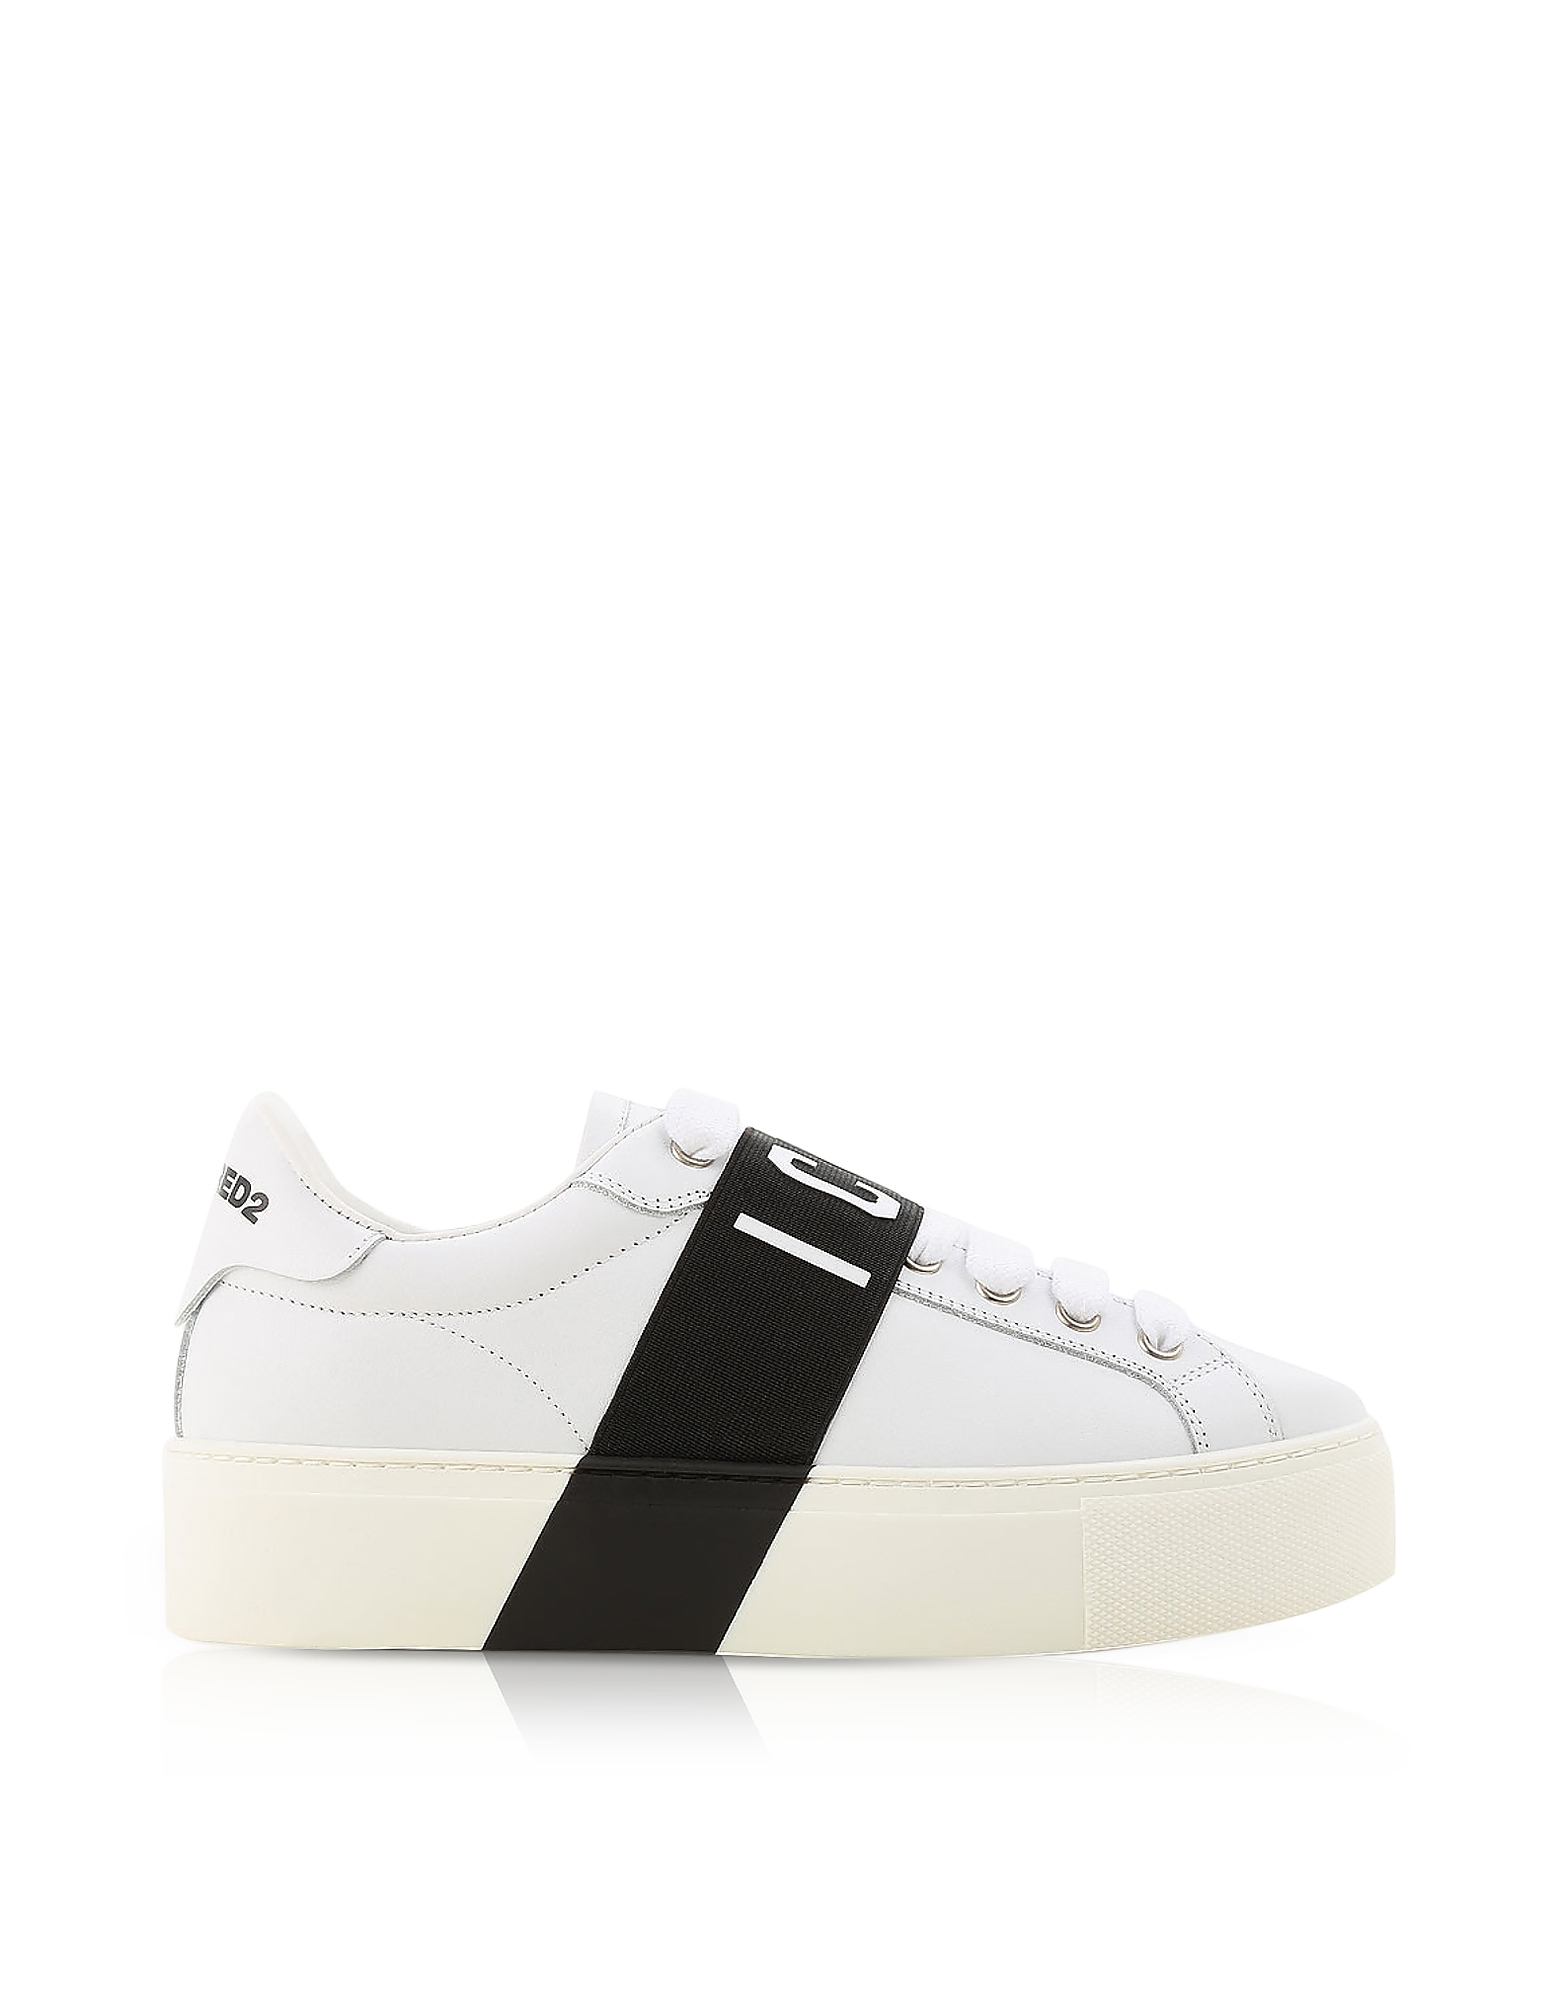 DSquared2 Shoes, White Leather Icon Women's Sneakers w/Black Band